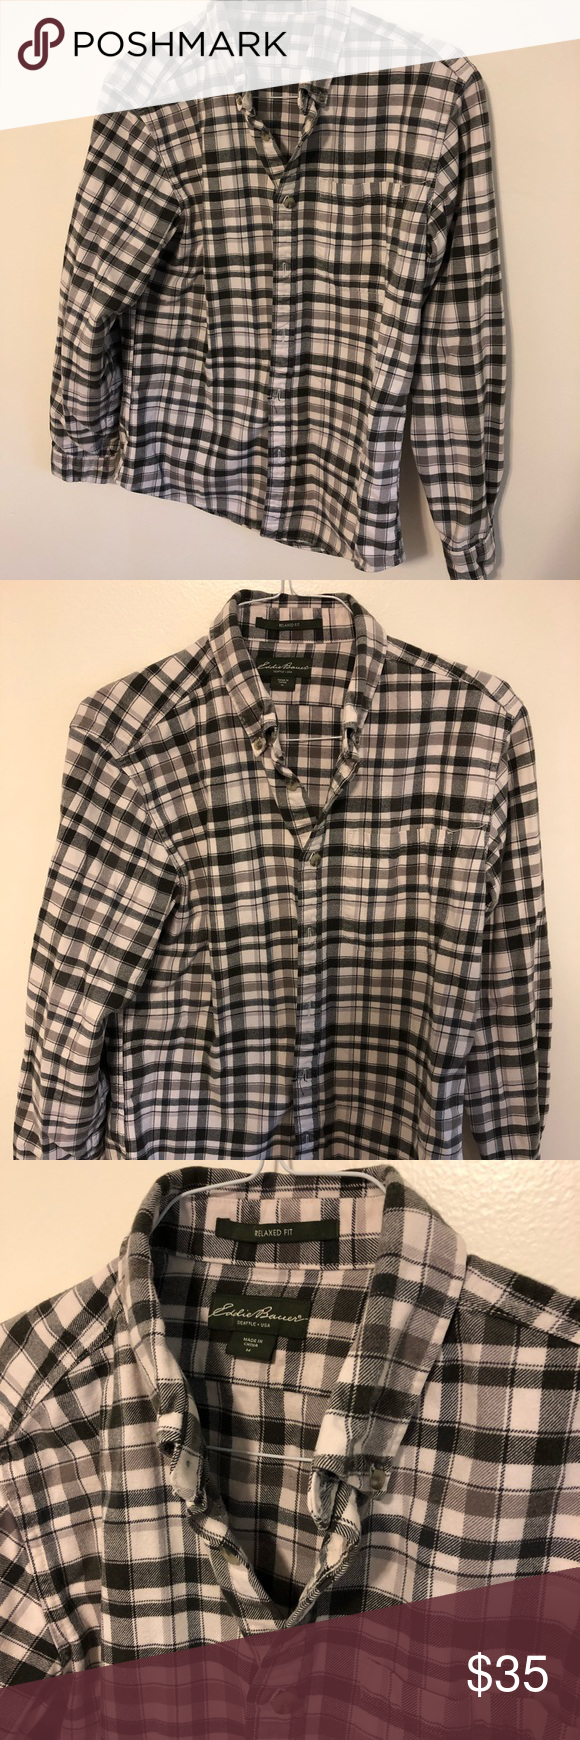 aed53ea3a3630 NWOT Men s Eddie Bauer Relaxed Fit Flannel Brand new without tags men s size  medium relaxed fit flannel from Eddie Bauer Eddie Bauer Shirts Casual  Button ...